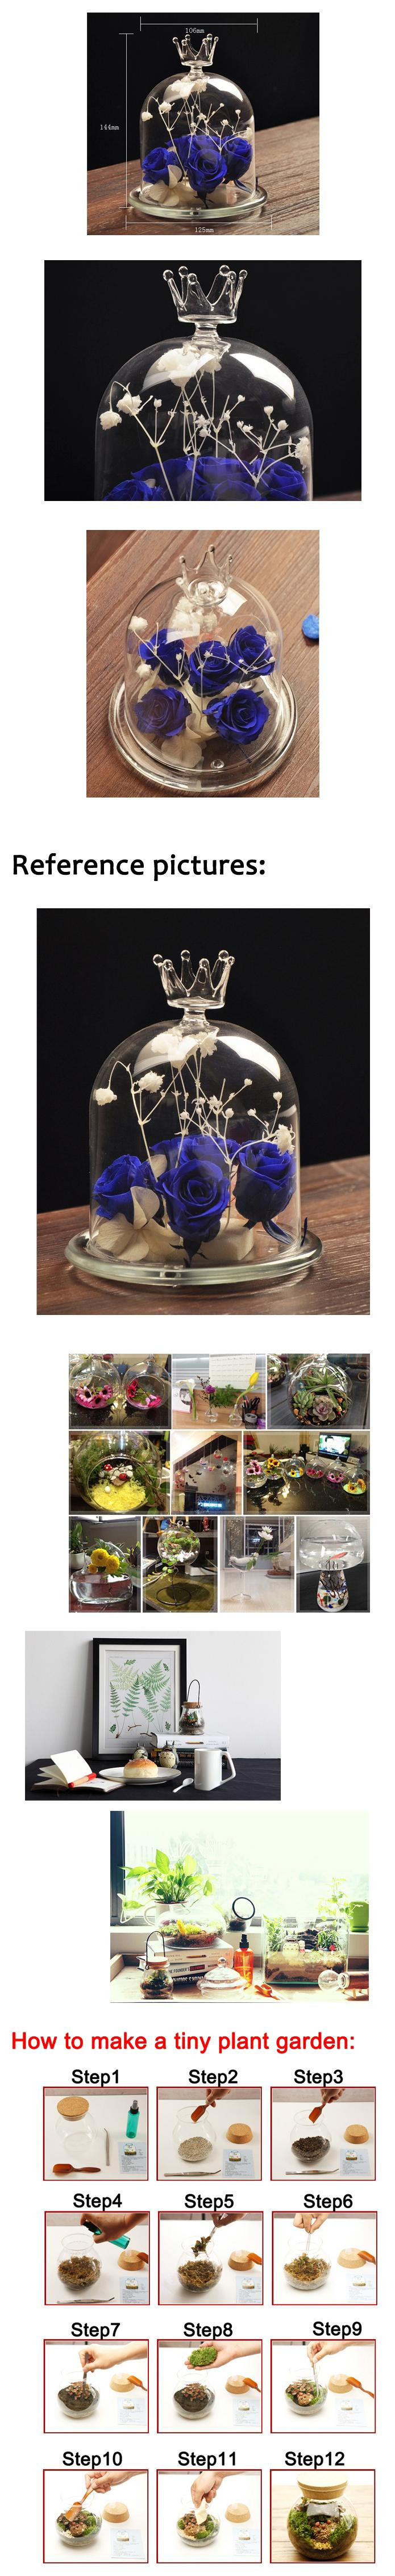 glass floral vases wholesale of 5 6 inches transparent flower plant vase crown glass cloche vases in import duties taxes and charges